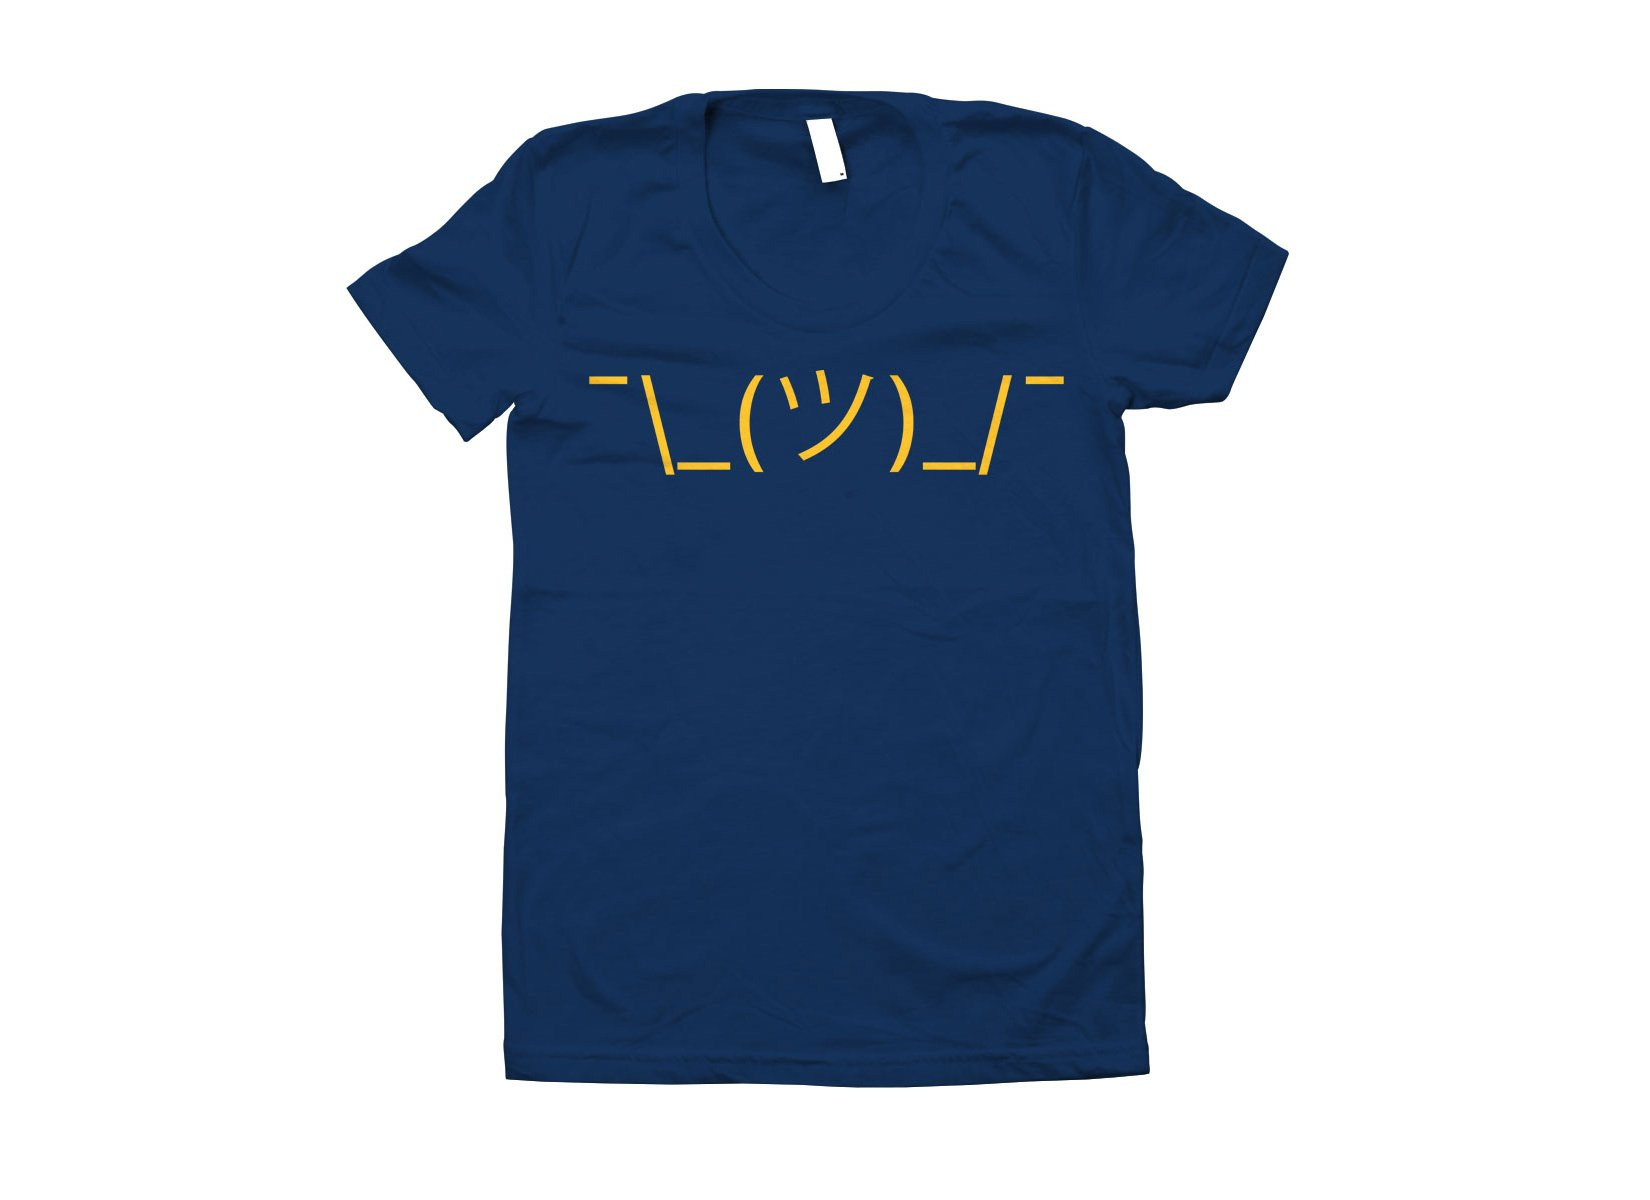 Shrug Emoji on Juniors T-Shirt